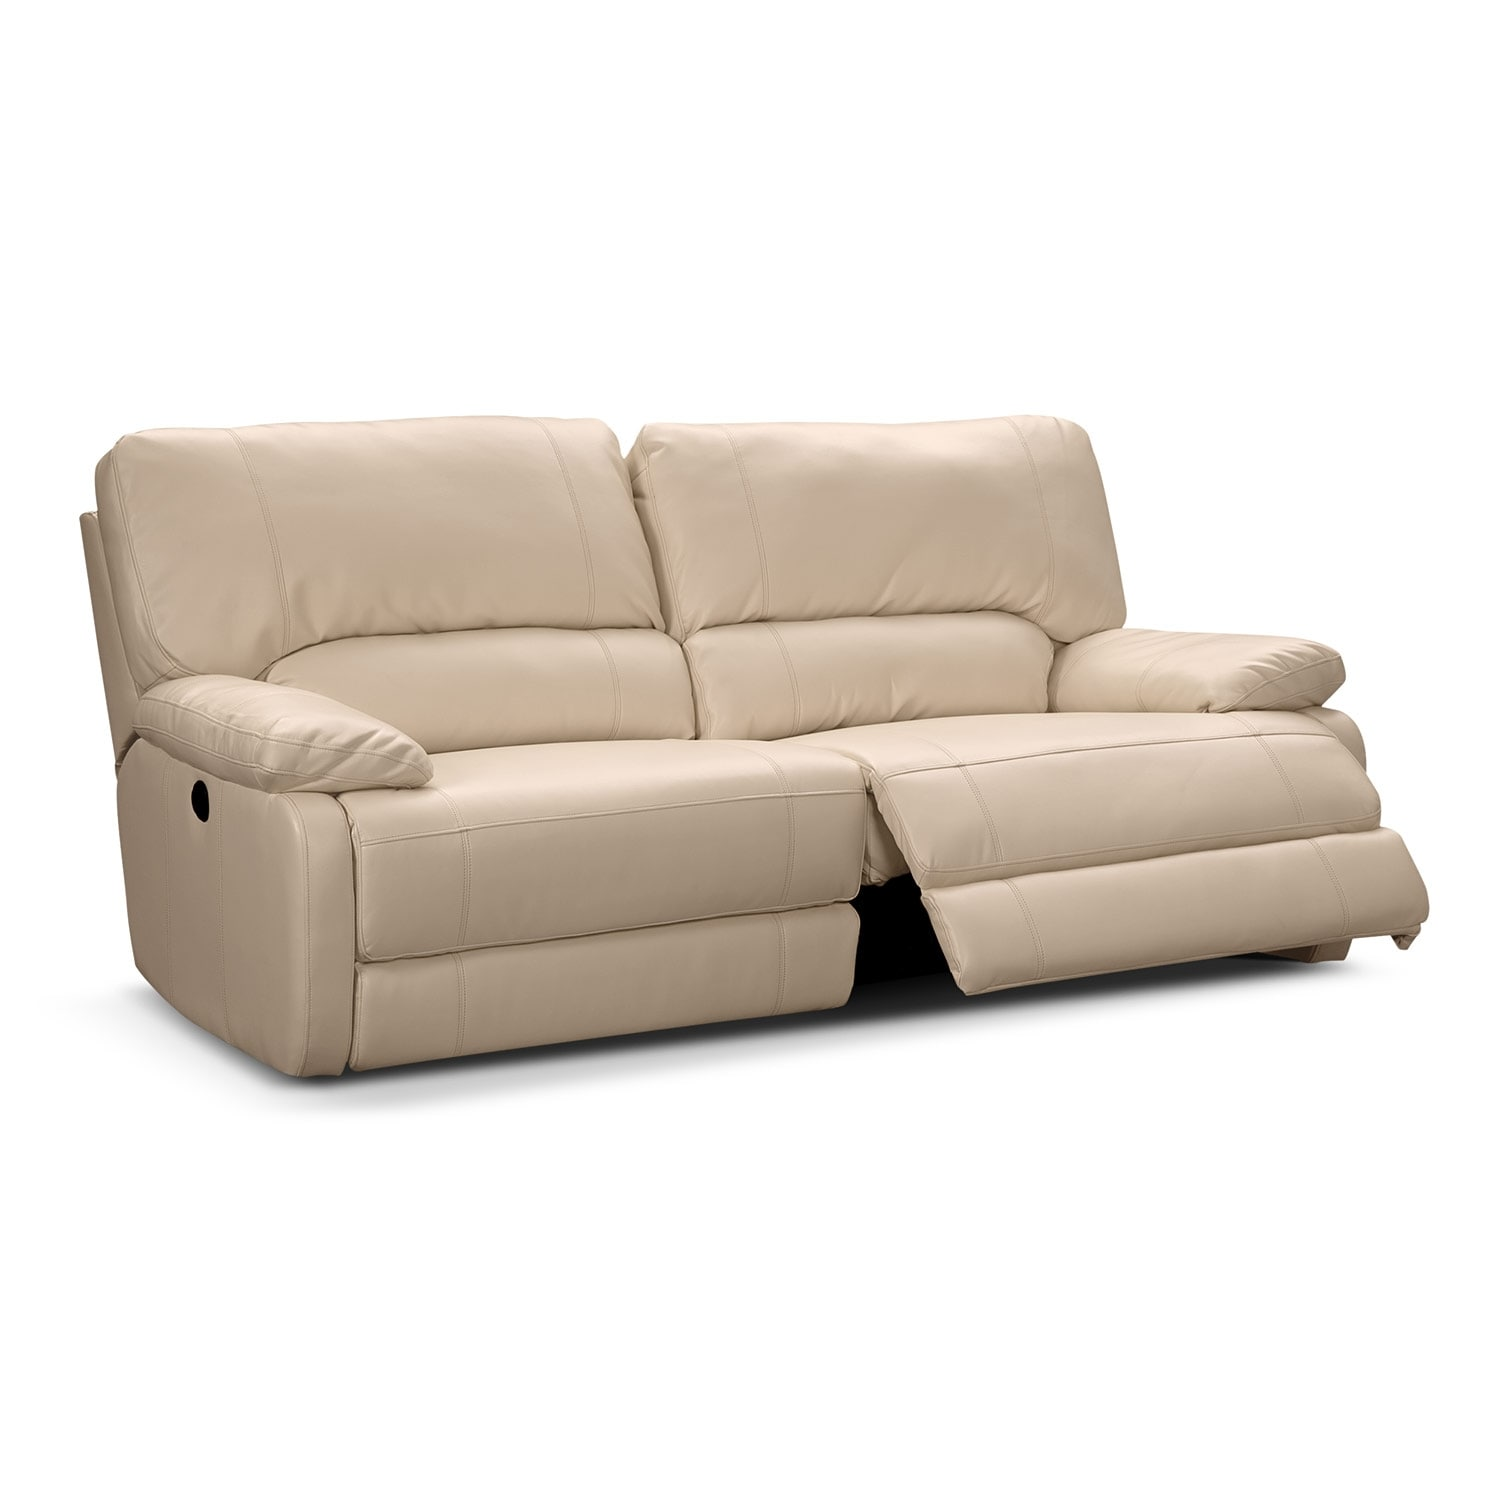 Coronado leather power reclining sofa value city furniture Leather reclining loveseat